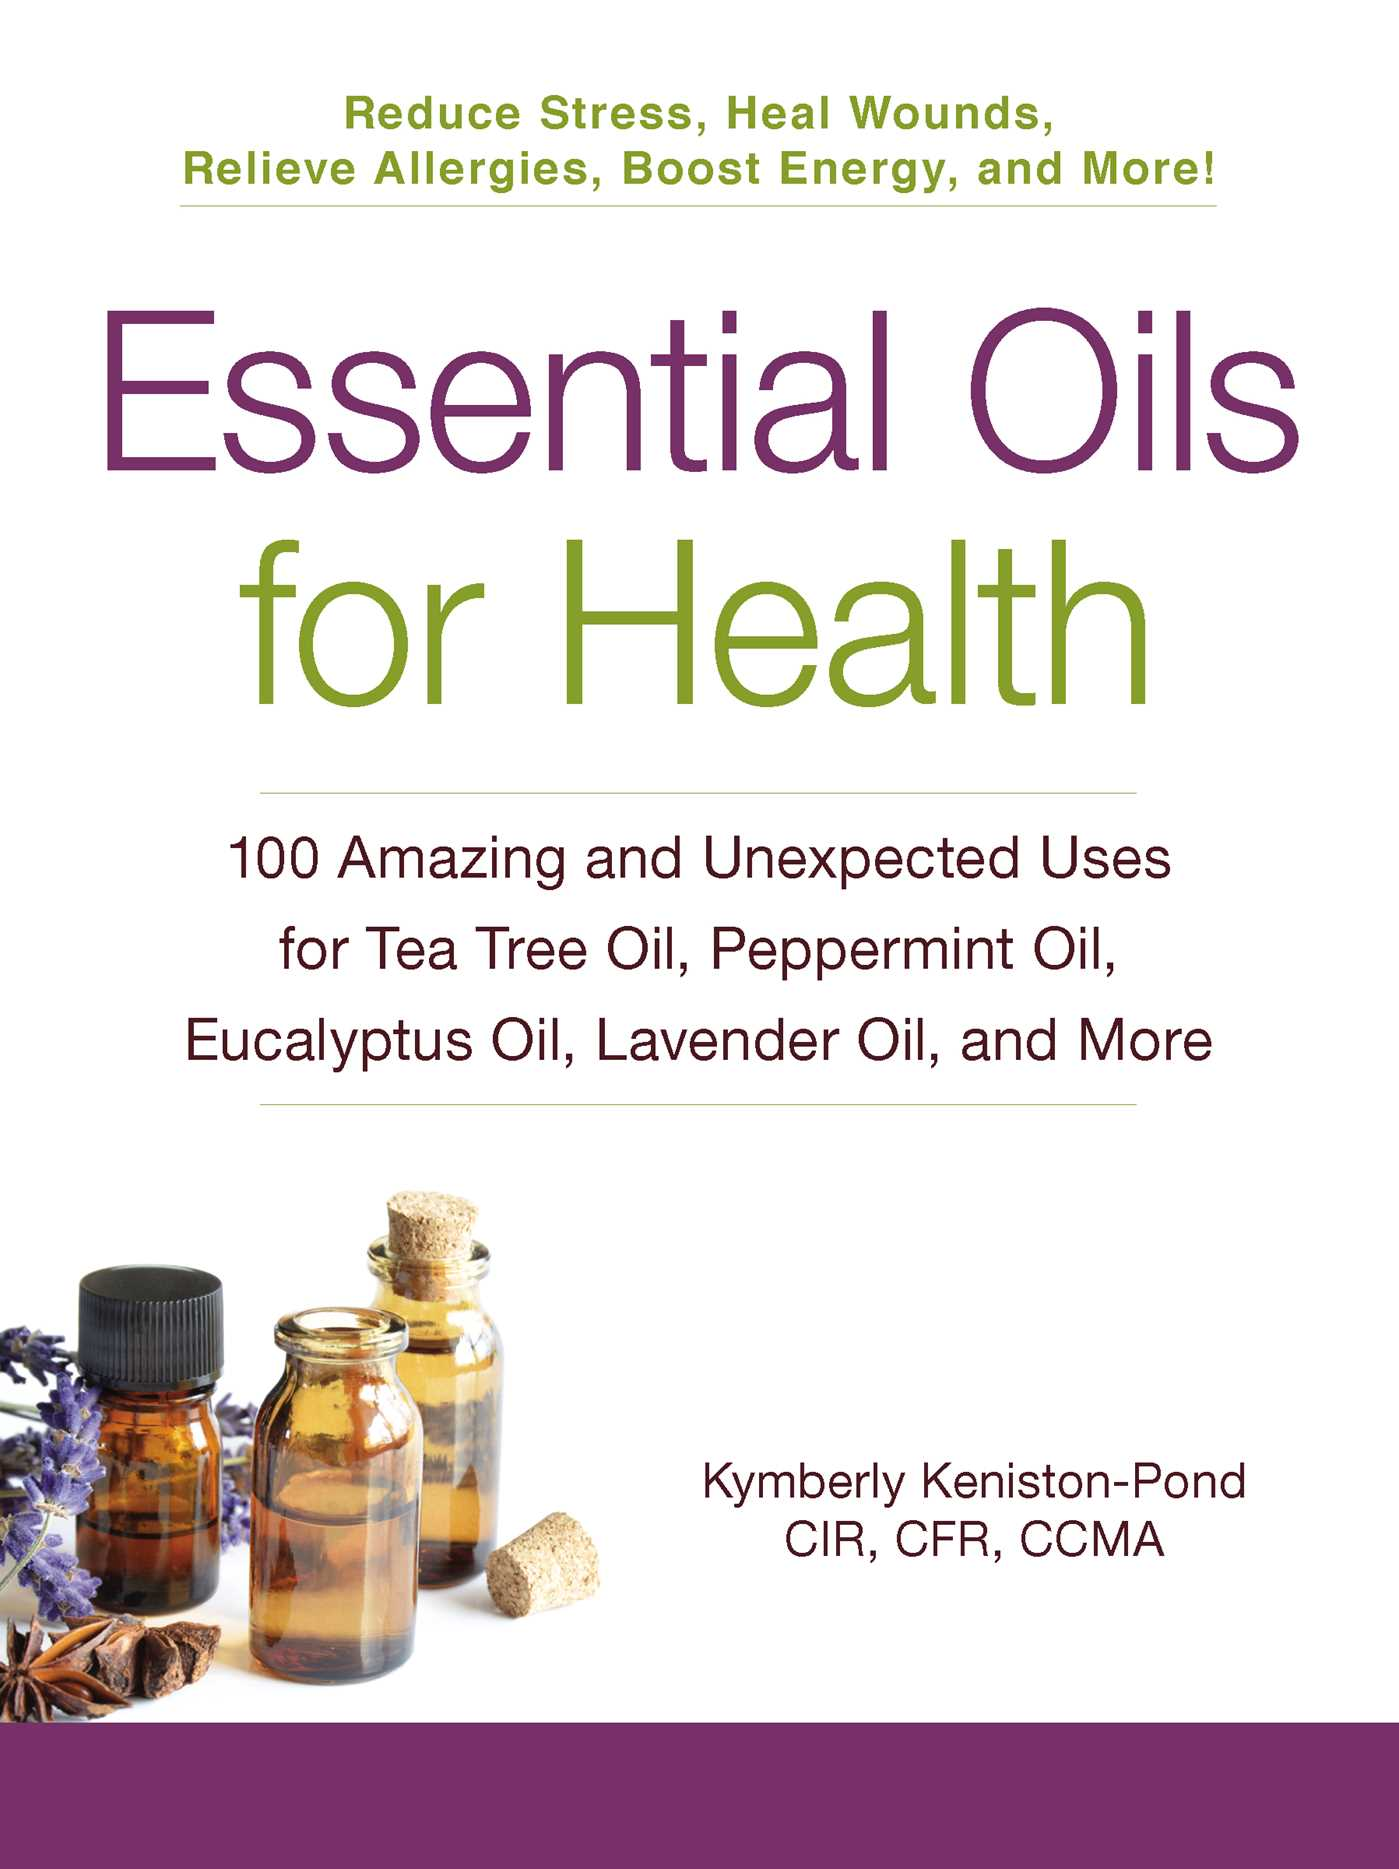 Essential Oils for Health 100 Amazing and Unexpected Uses for Tea Tree Oil, Peppermint Oil, Eucalyptus Oil, Lavender Oil, and More